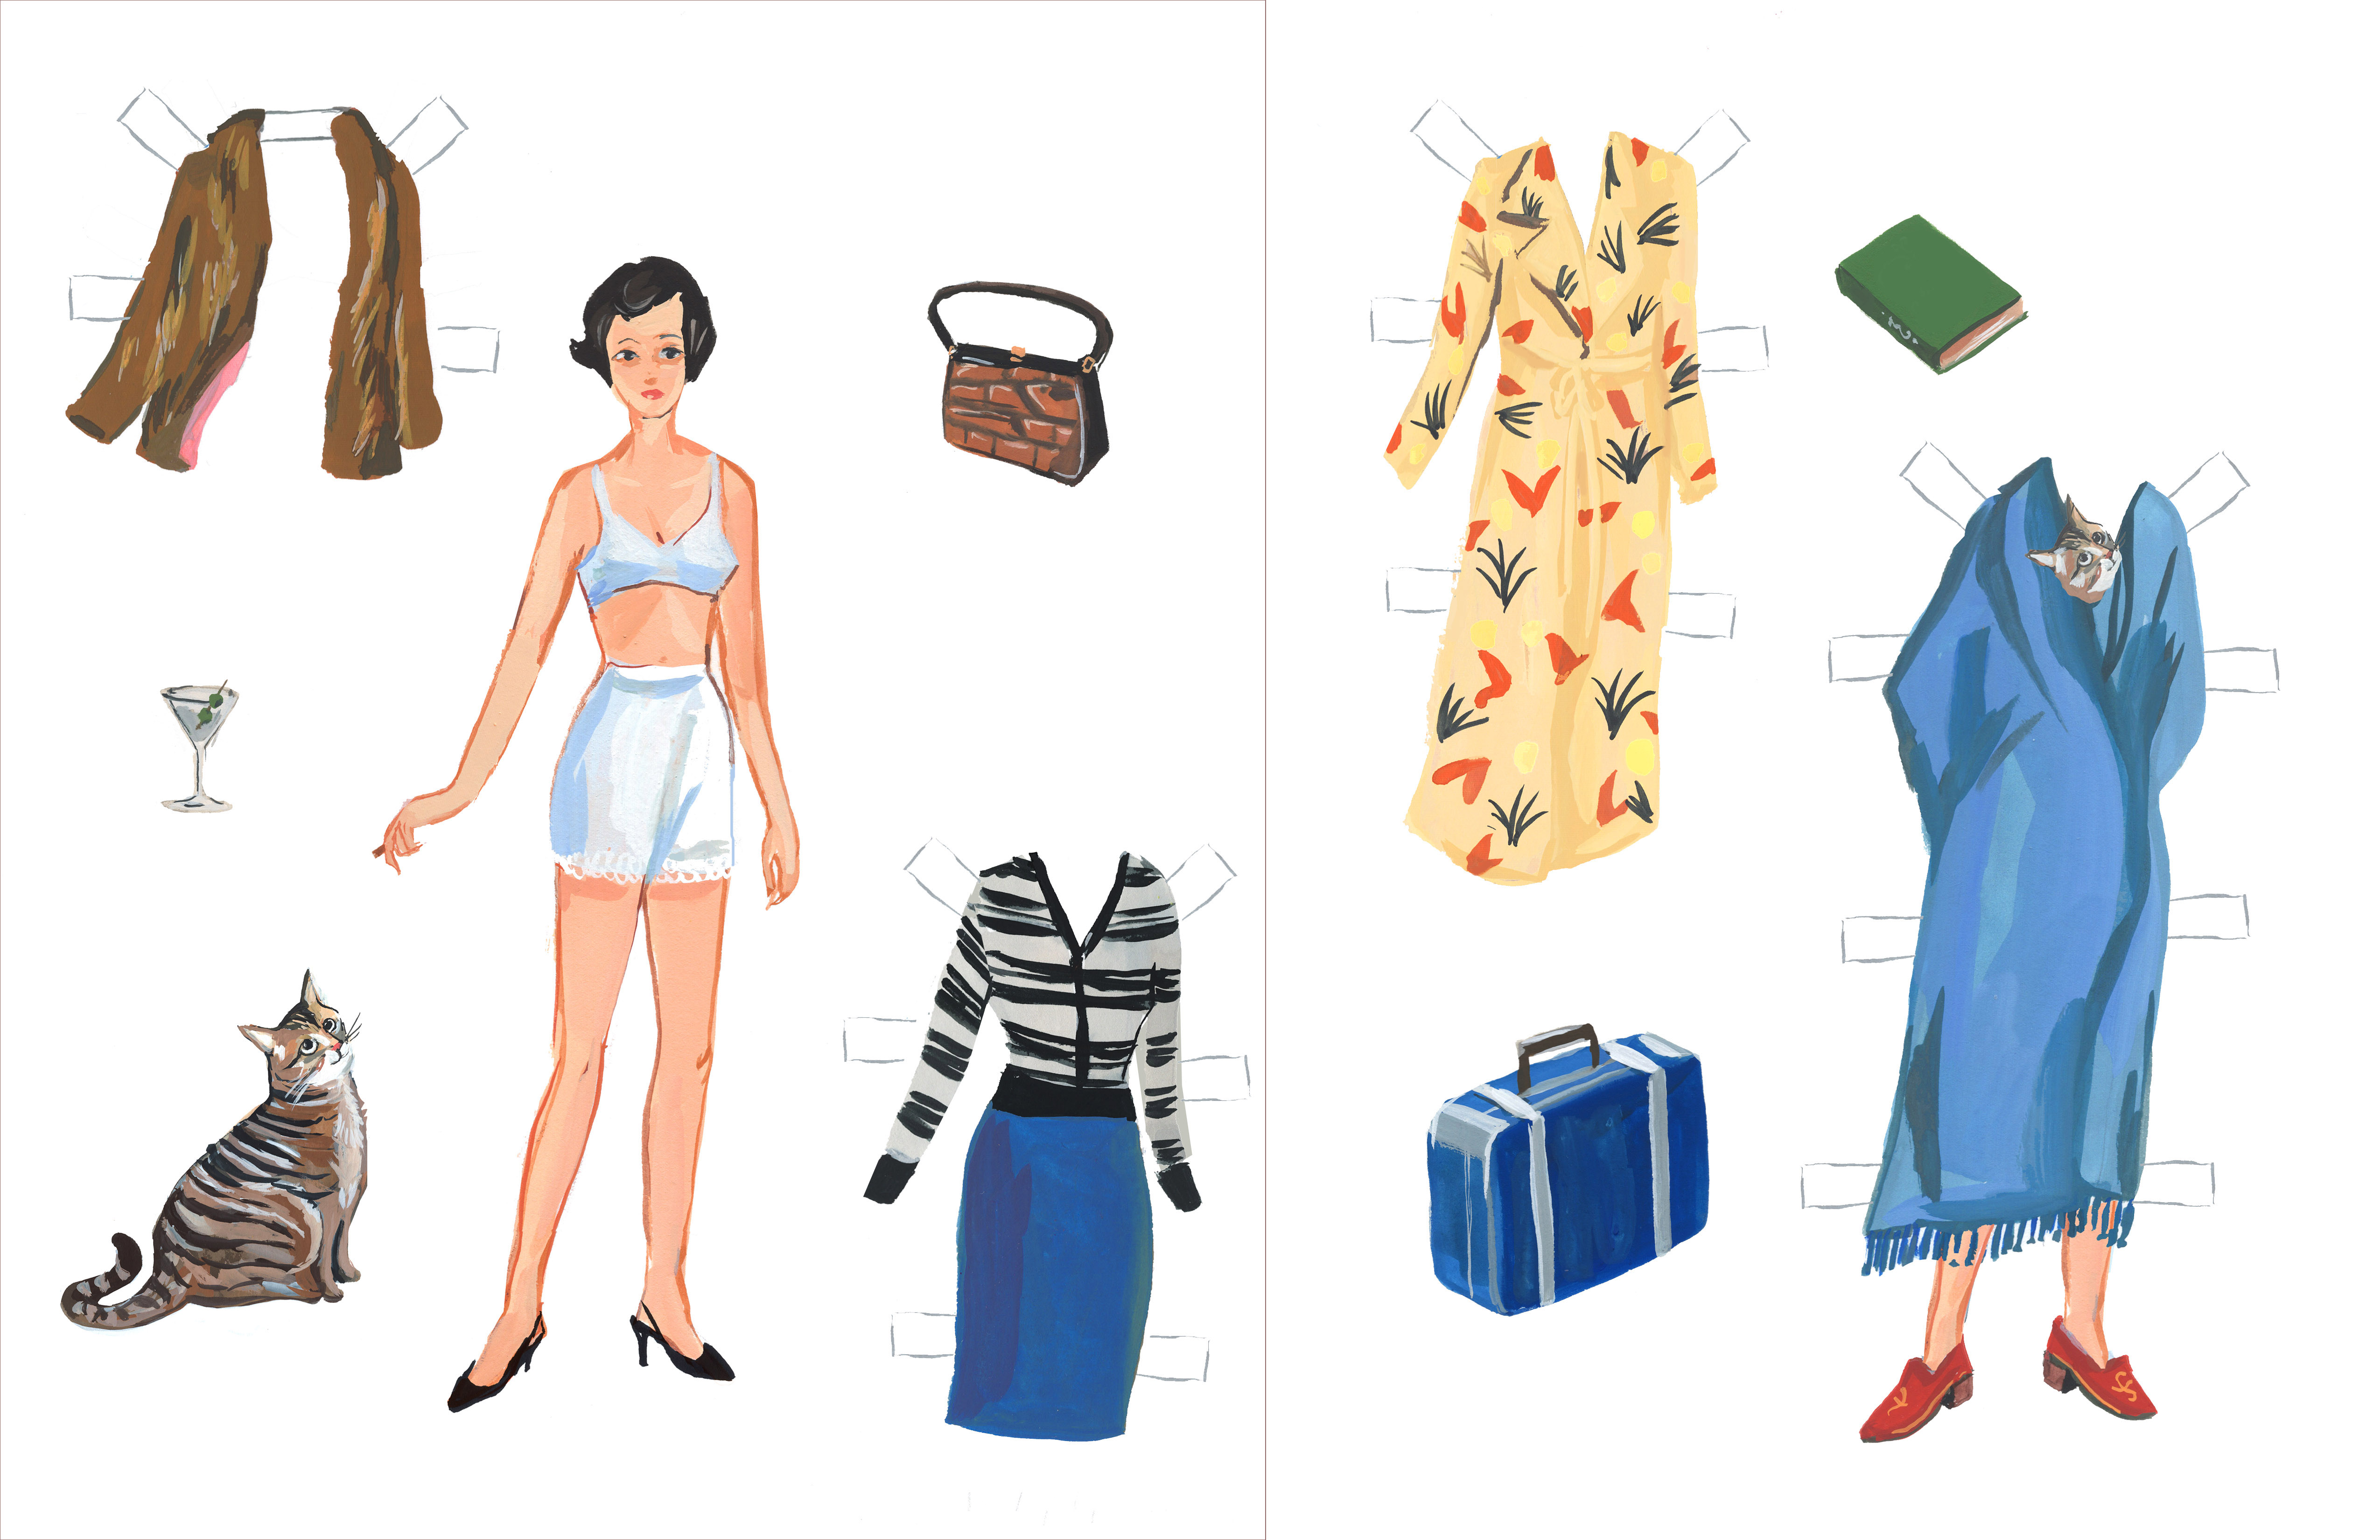 image about Paper Dolls Printable identified as Literary Paper Dolls: Franny